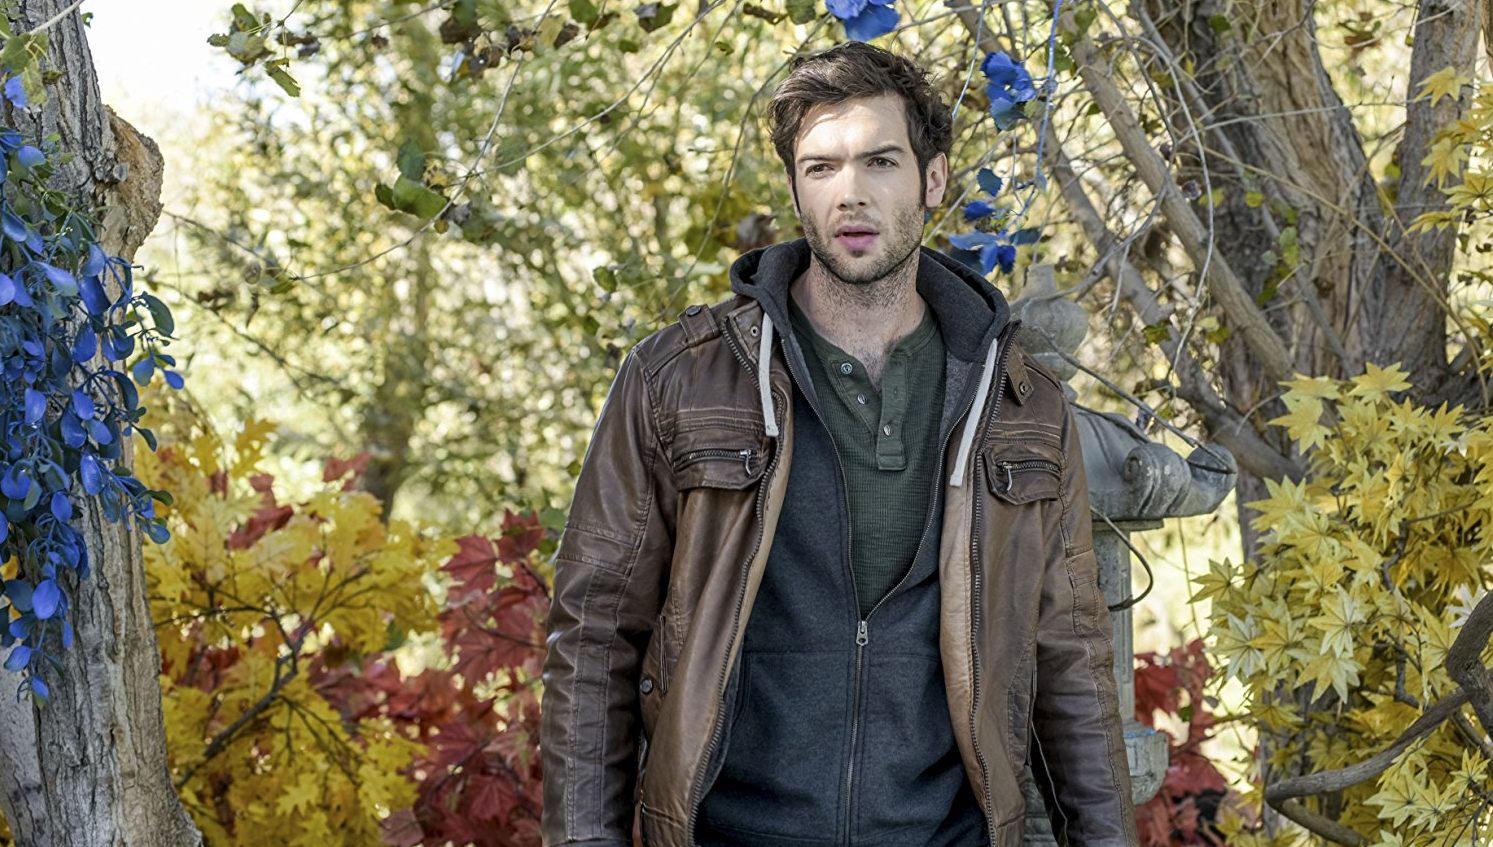 Star Trek: Discovery's Young Spock Will Be Played By Ethan Peck In Season 2